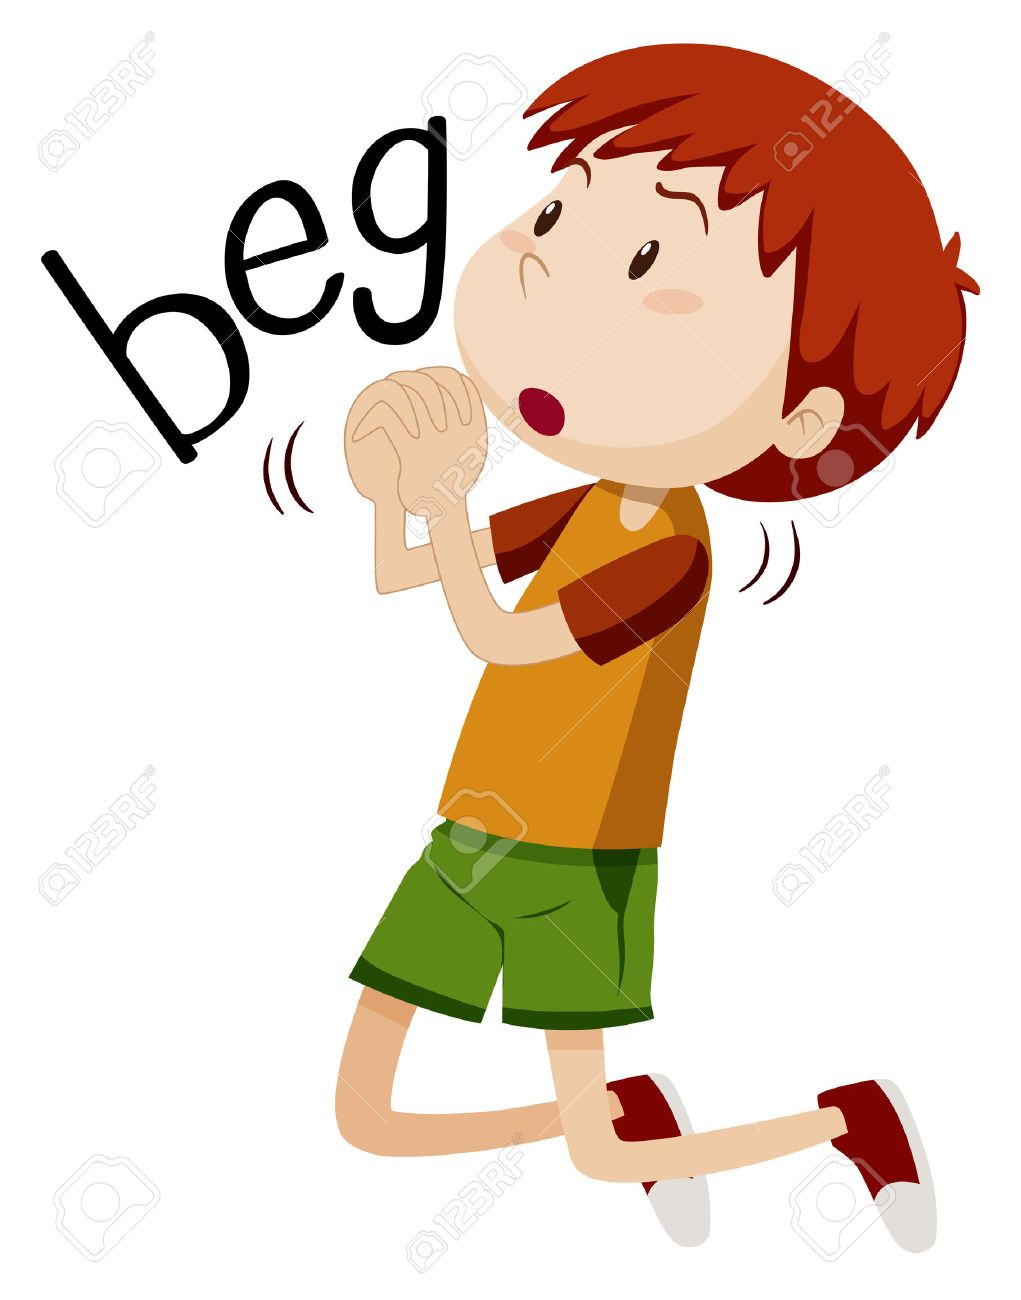 boy begging for something illustration royalty free cliparts